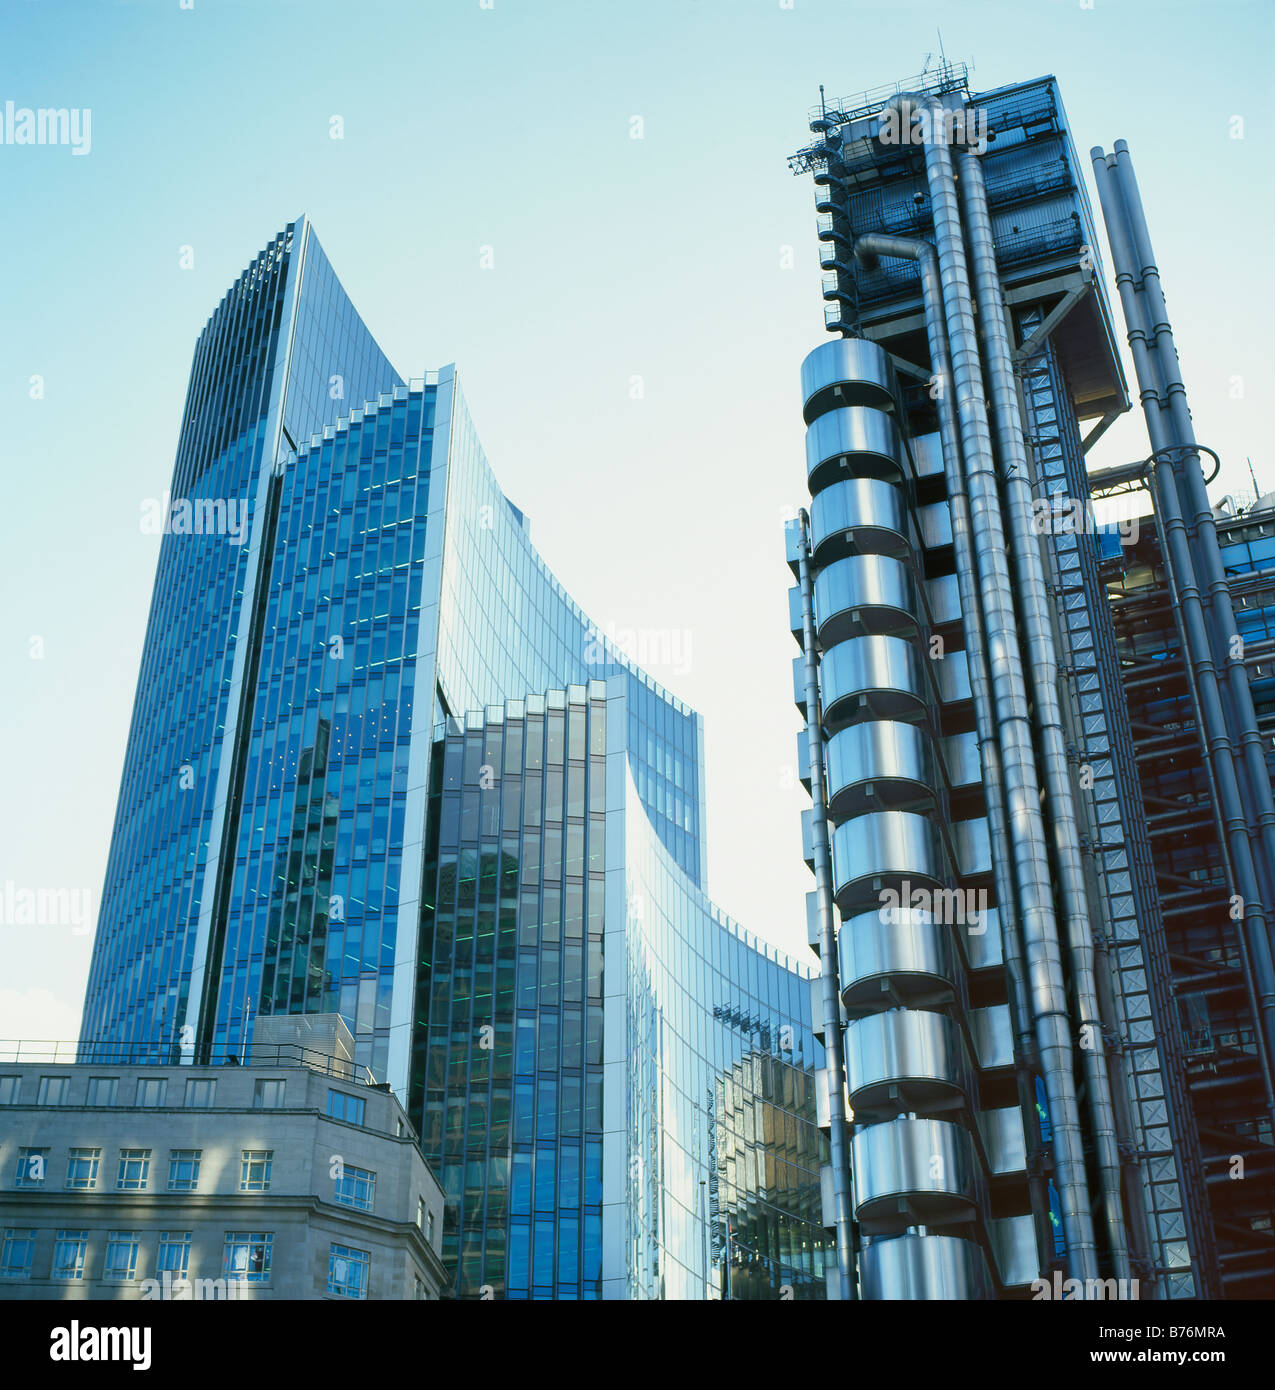 stock photo the willis building architect norman foster and lloyds building architect richard rogers in the city of london uk kathy dewitt